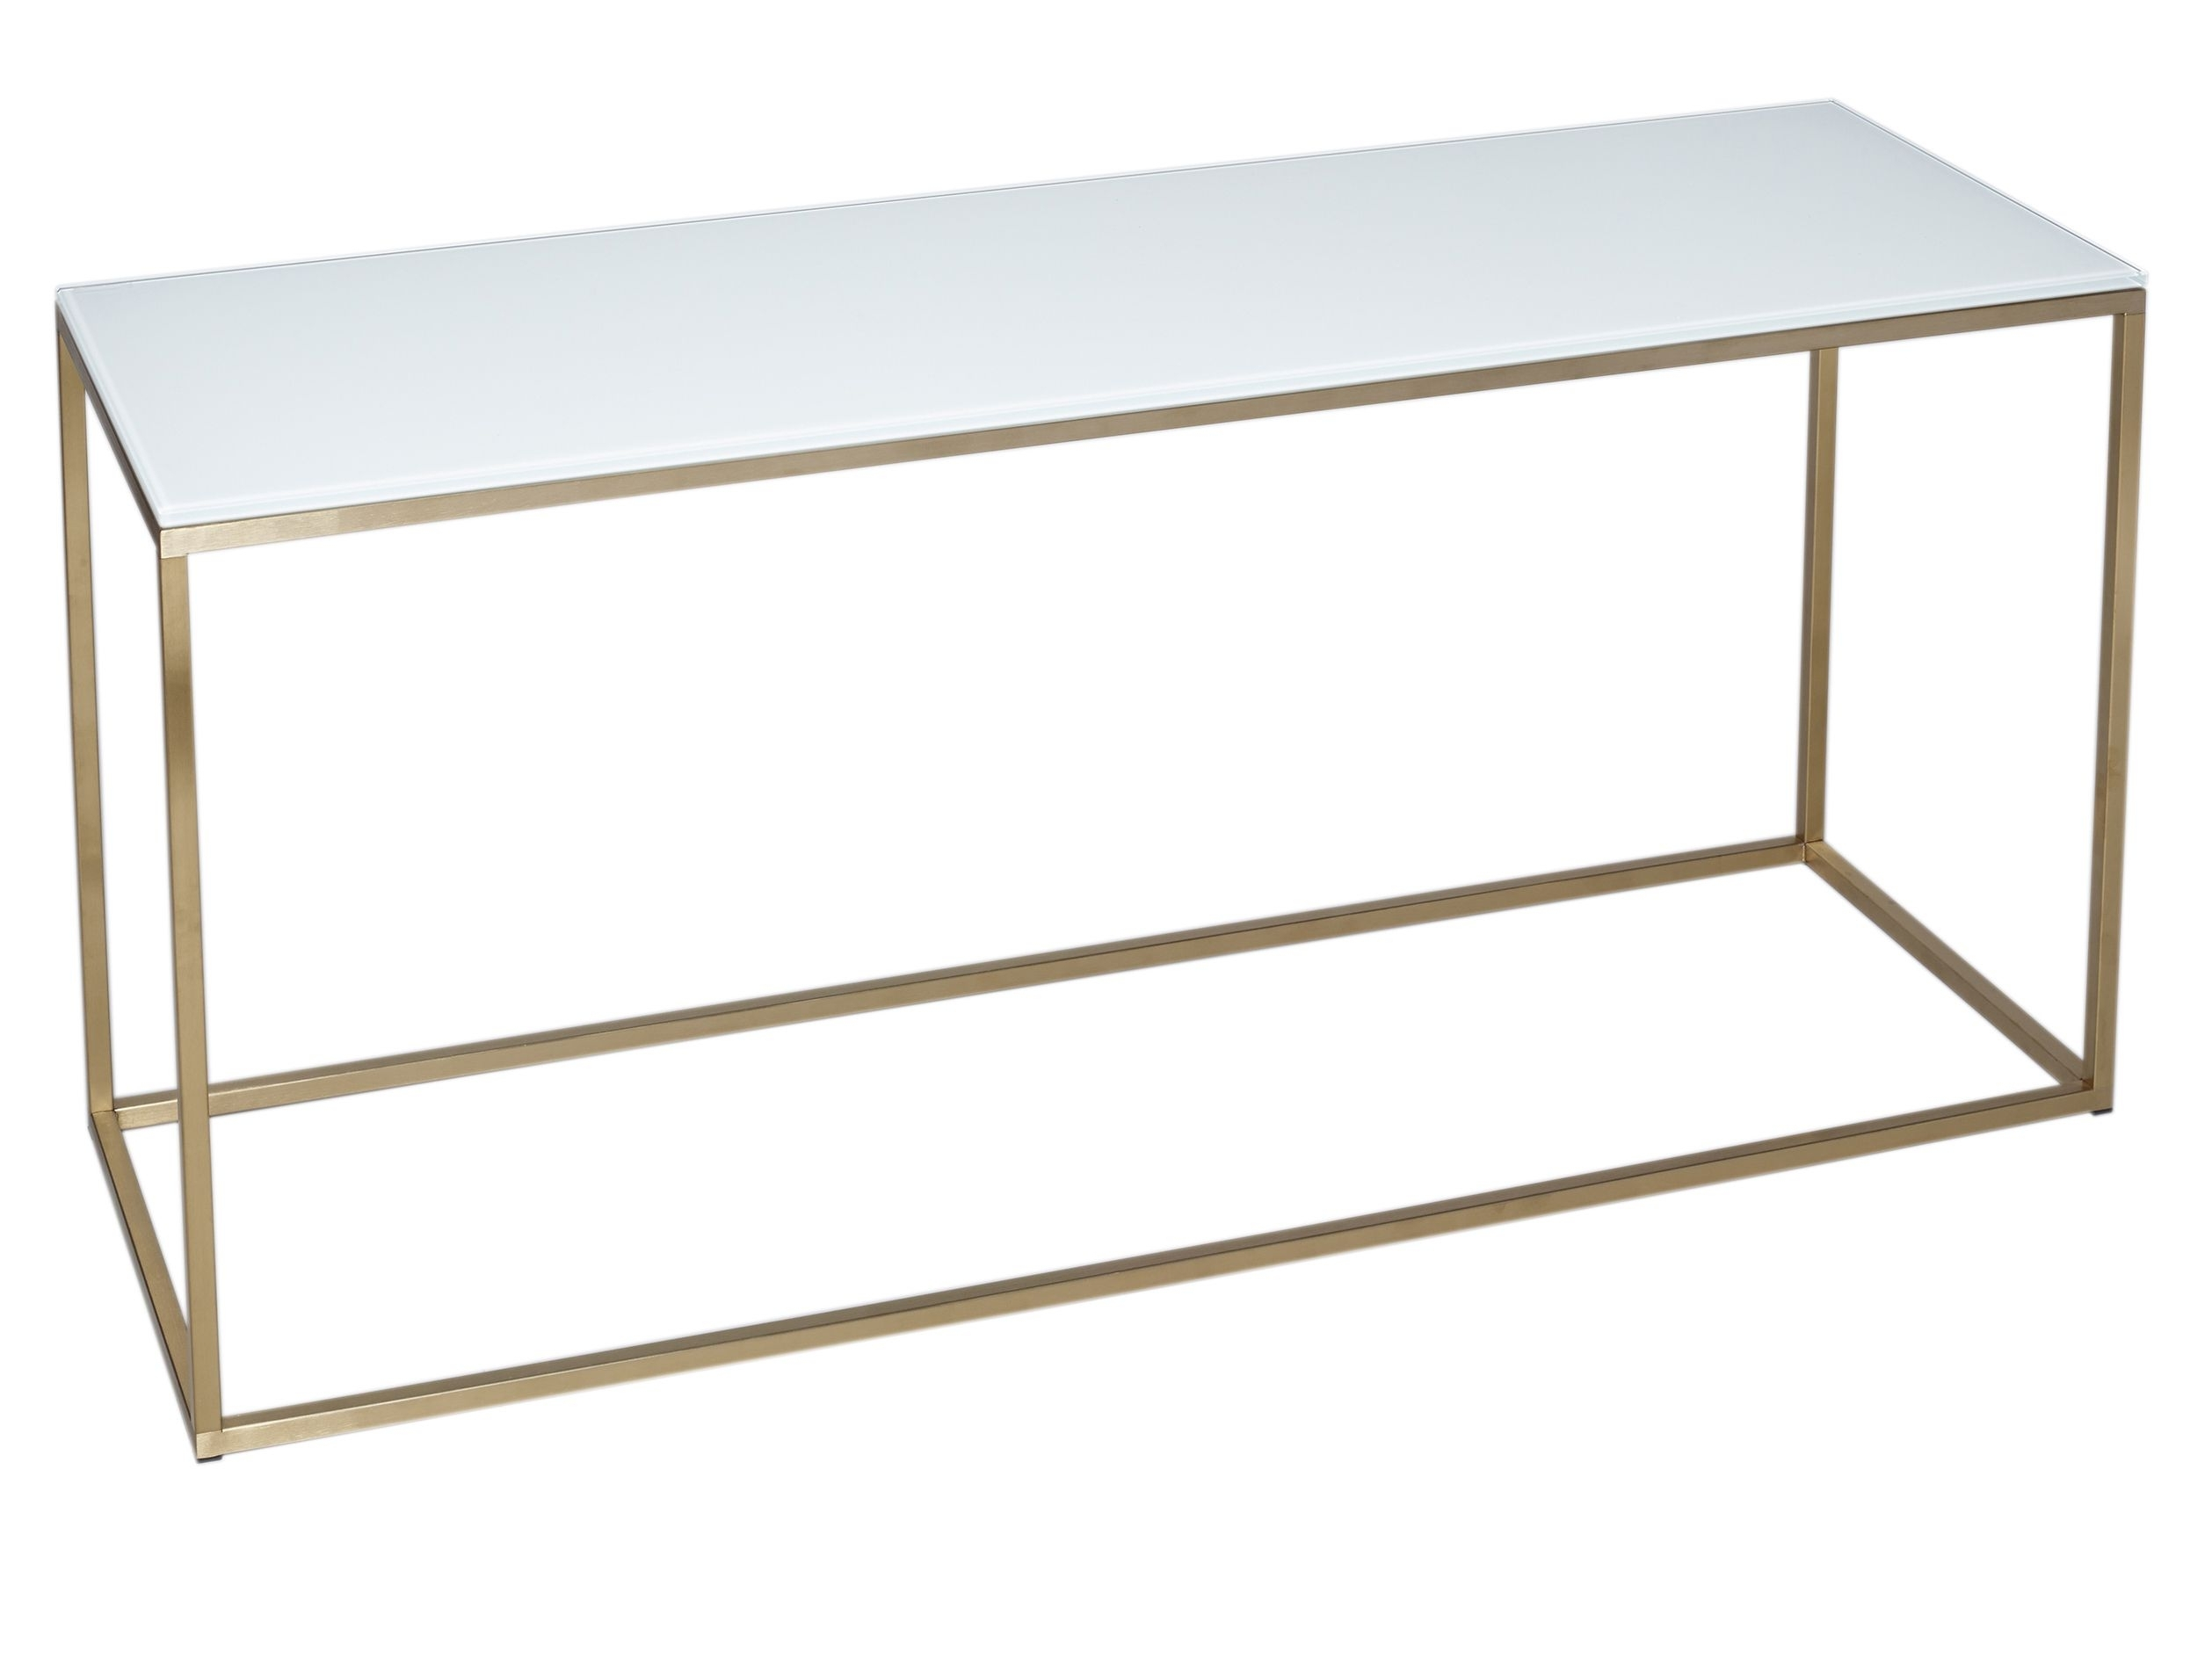 Tv Stand - Kensal White With Brass Base | Collection From Gillmore intended for Rectangular Brass Finish and Glass Coffee Tables (Image 27 of 30)